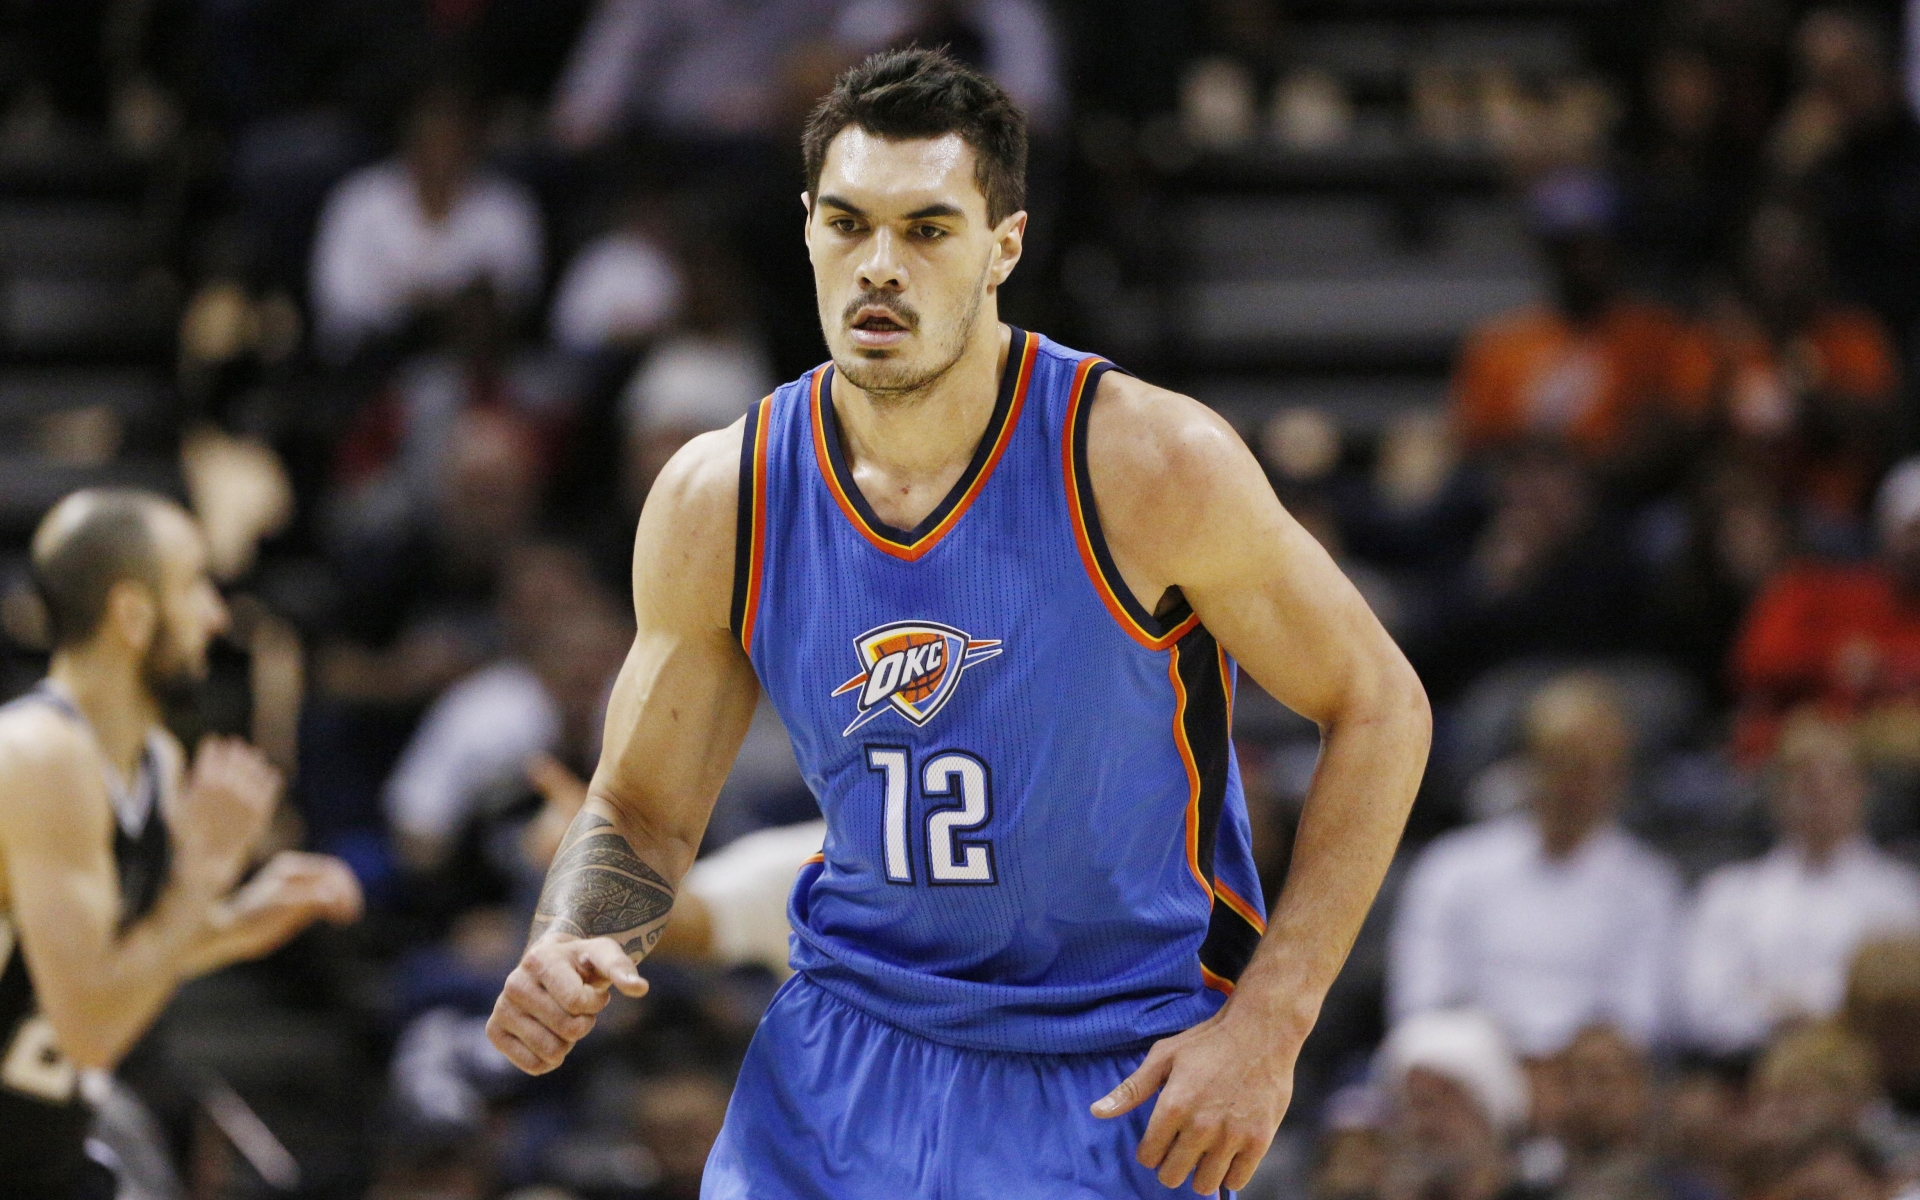 1920x1200 Steven Adams Basketball Oklahoma City Thunder 1200p